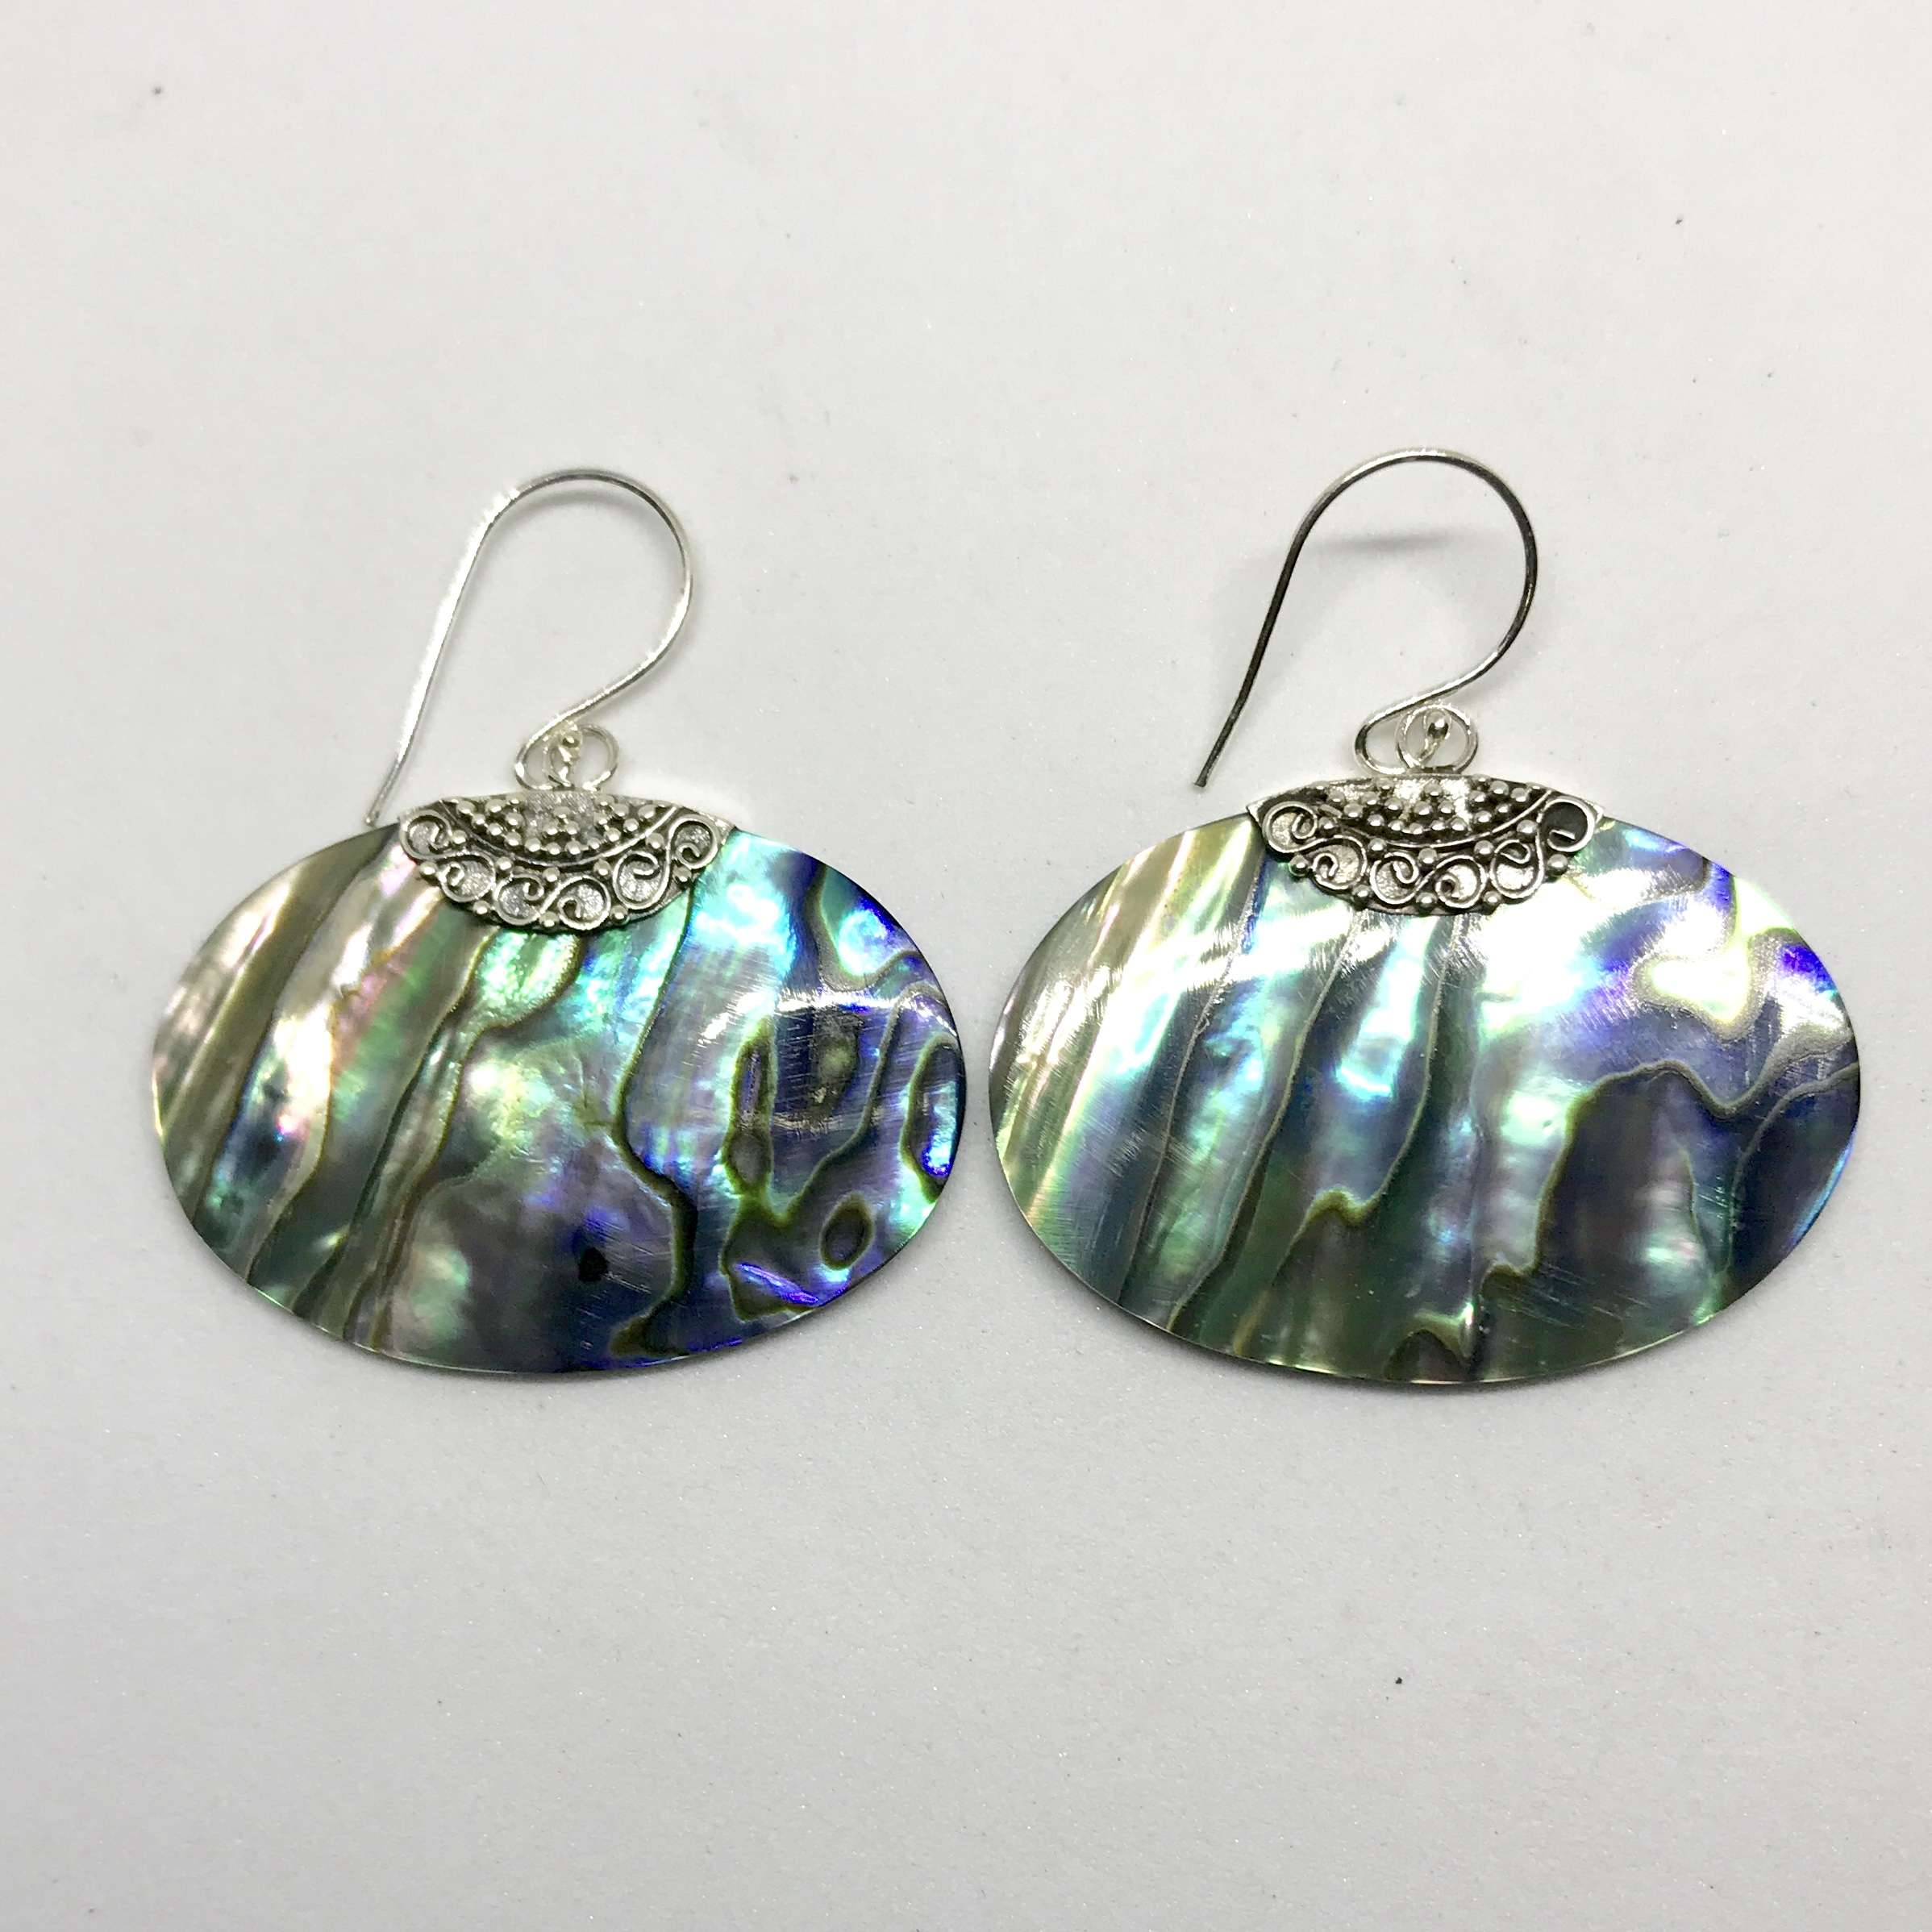 BALI SILVER EARRINGS WITH ABALONE